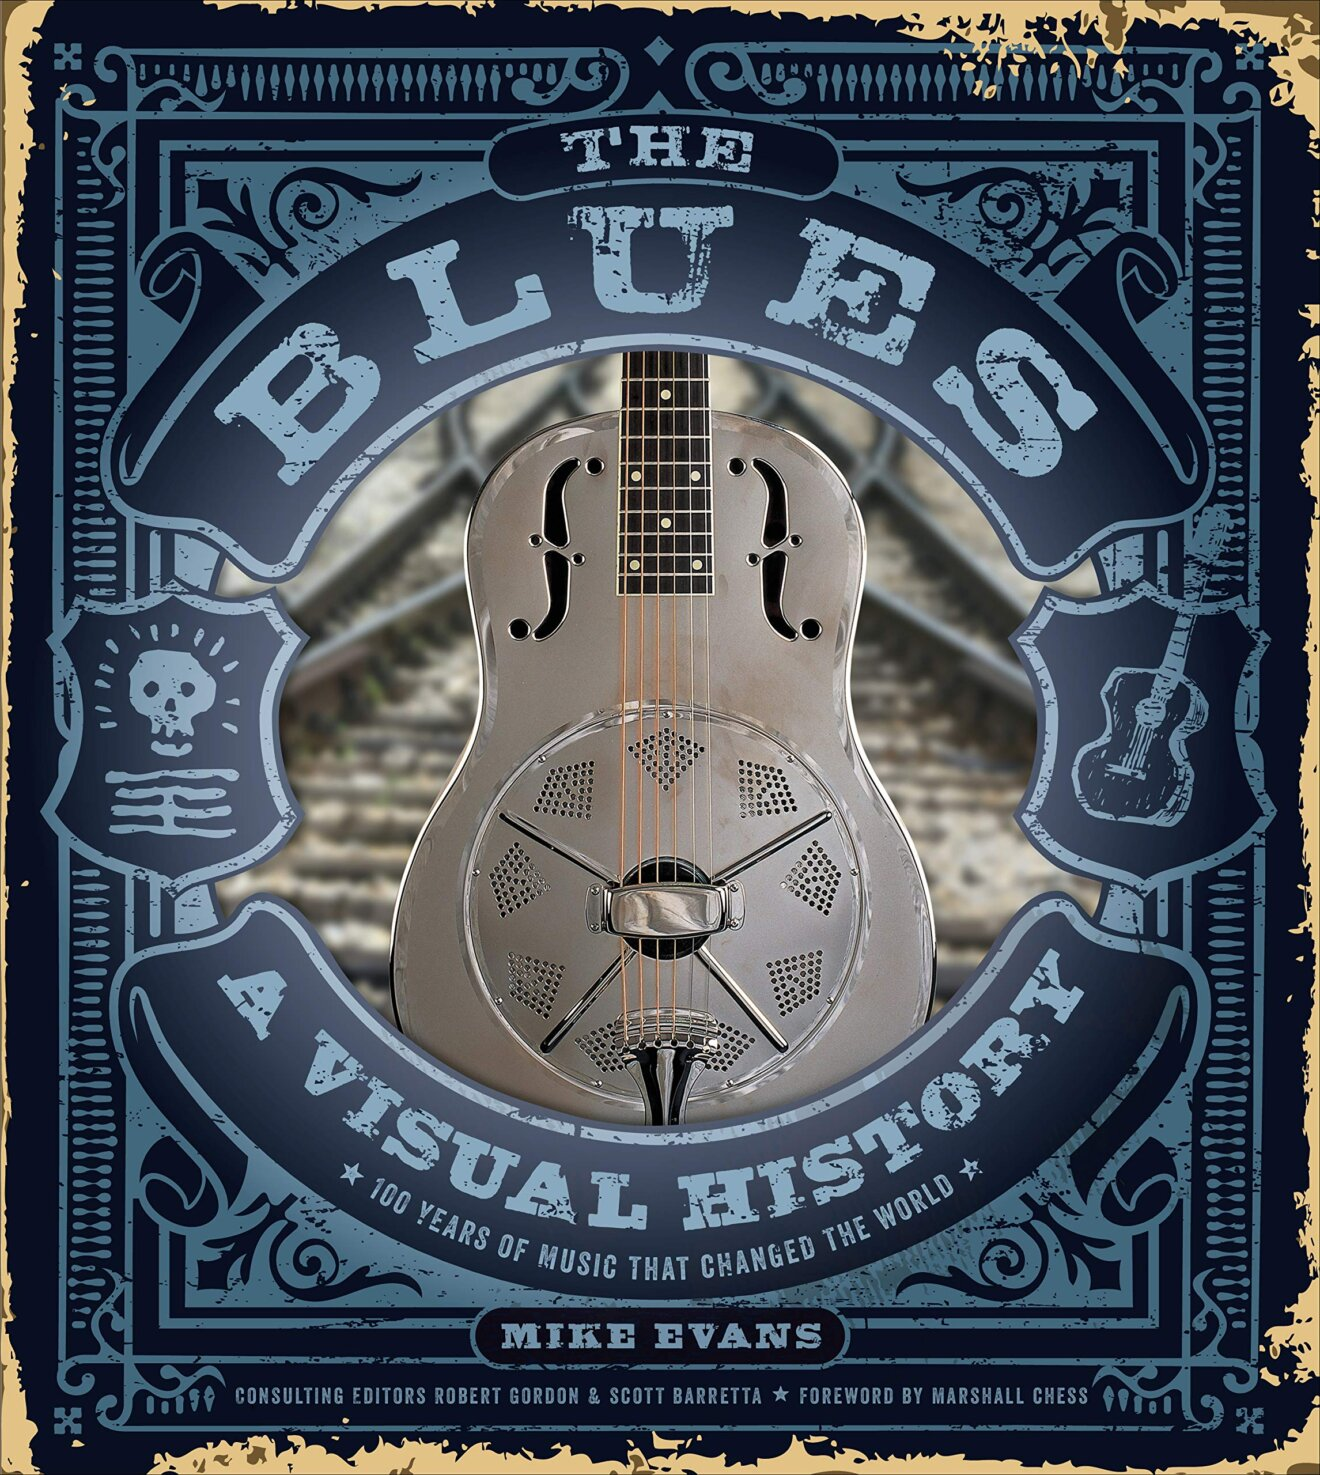 The Blues: A Visual History: 100 Years of Music That Changed the World